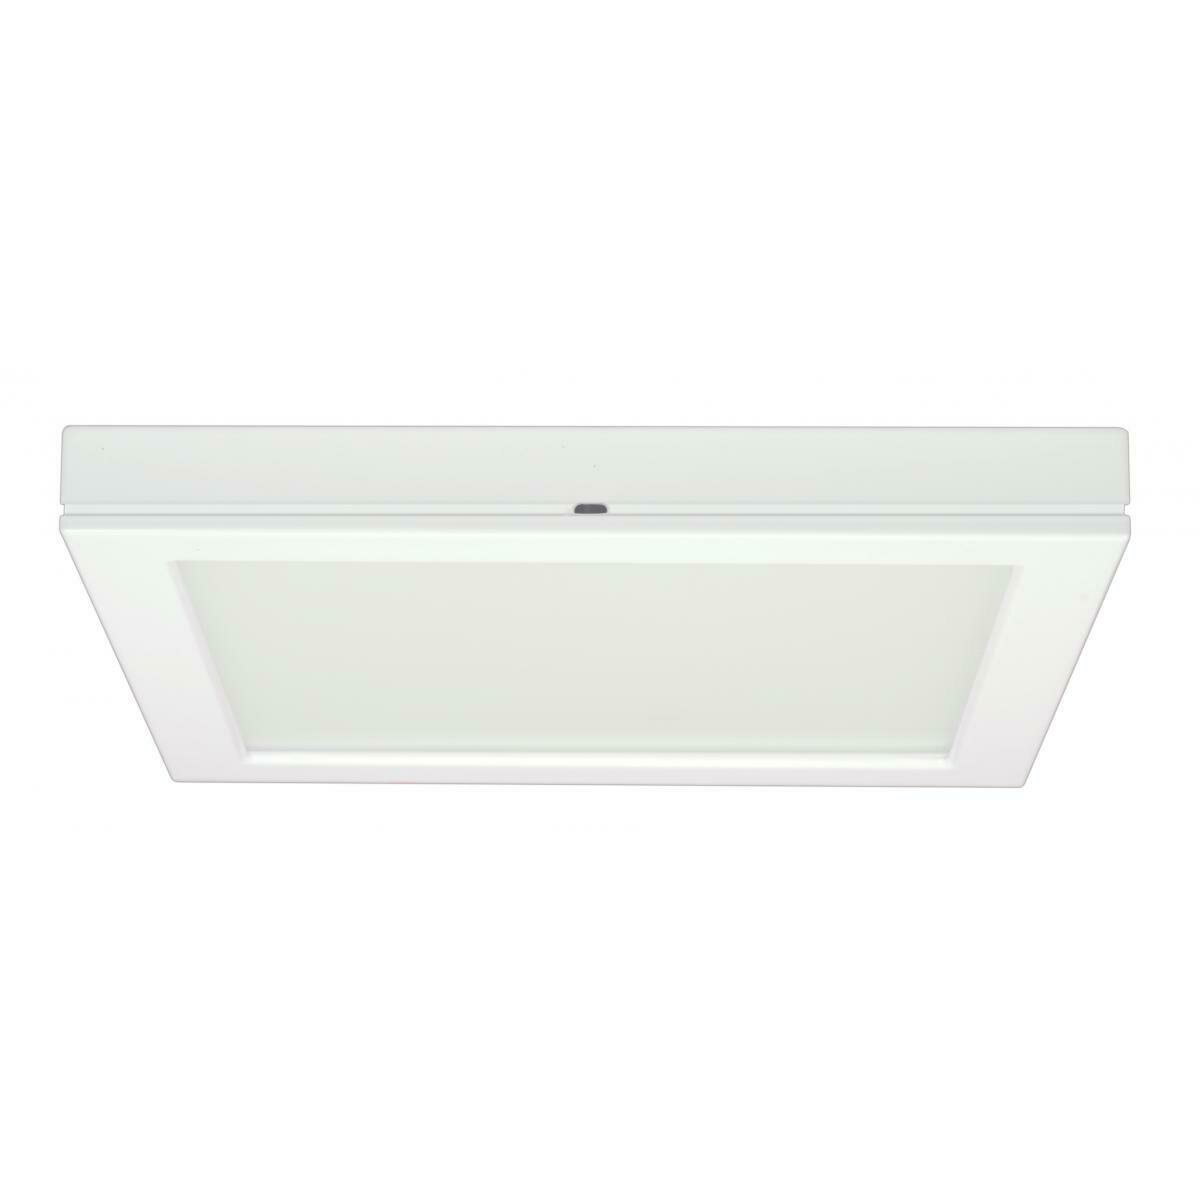 White Square LED Flushmount Fixture